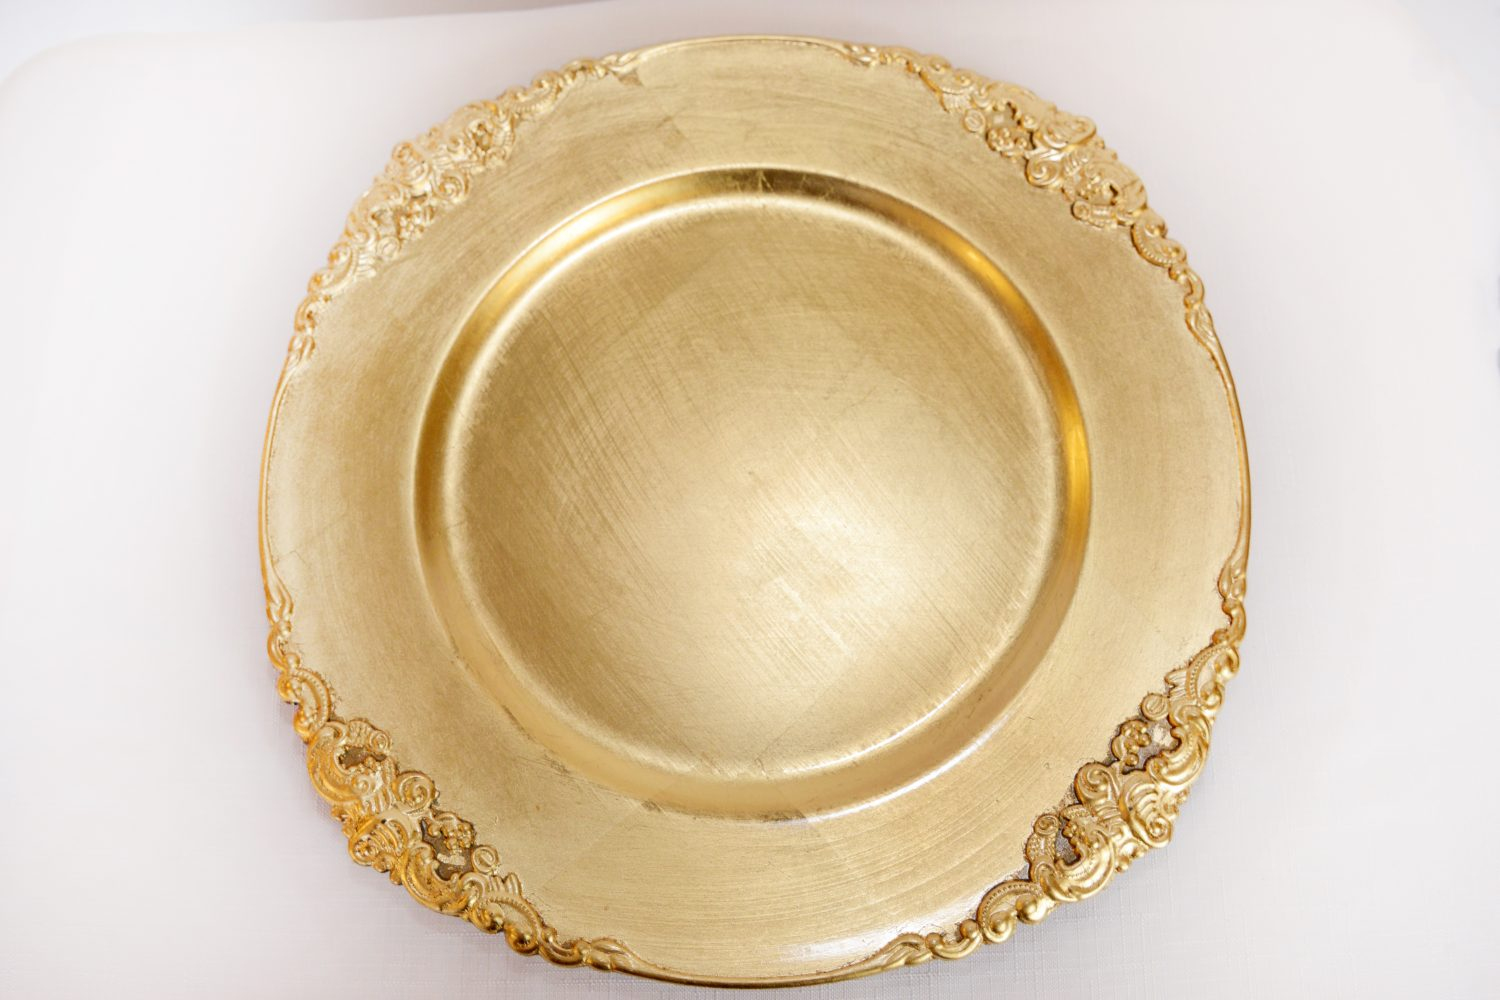 Gold Ornate Charger Plate Keeping It Vintage